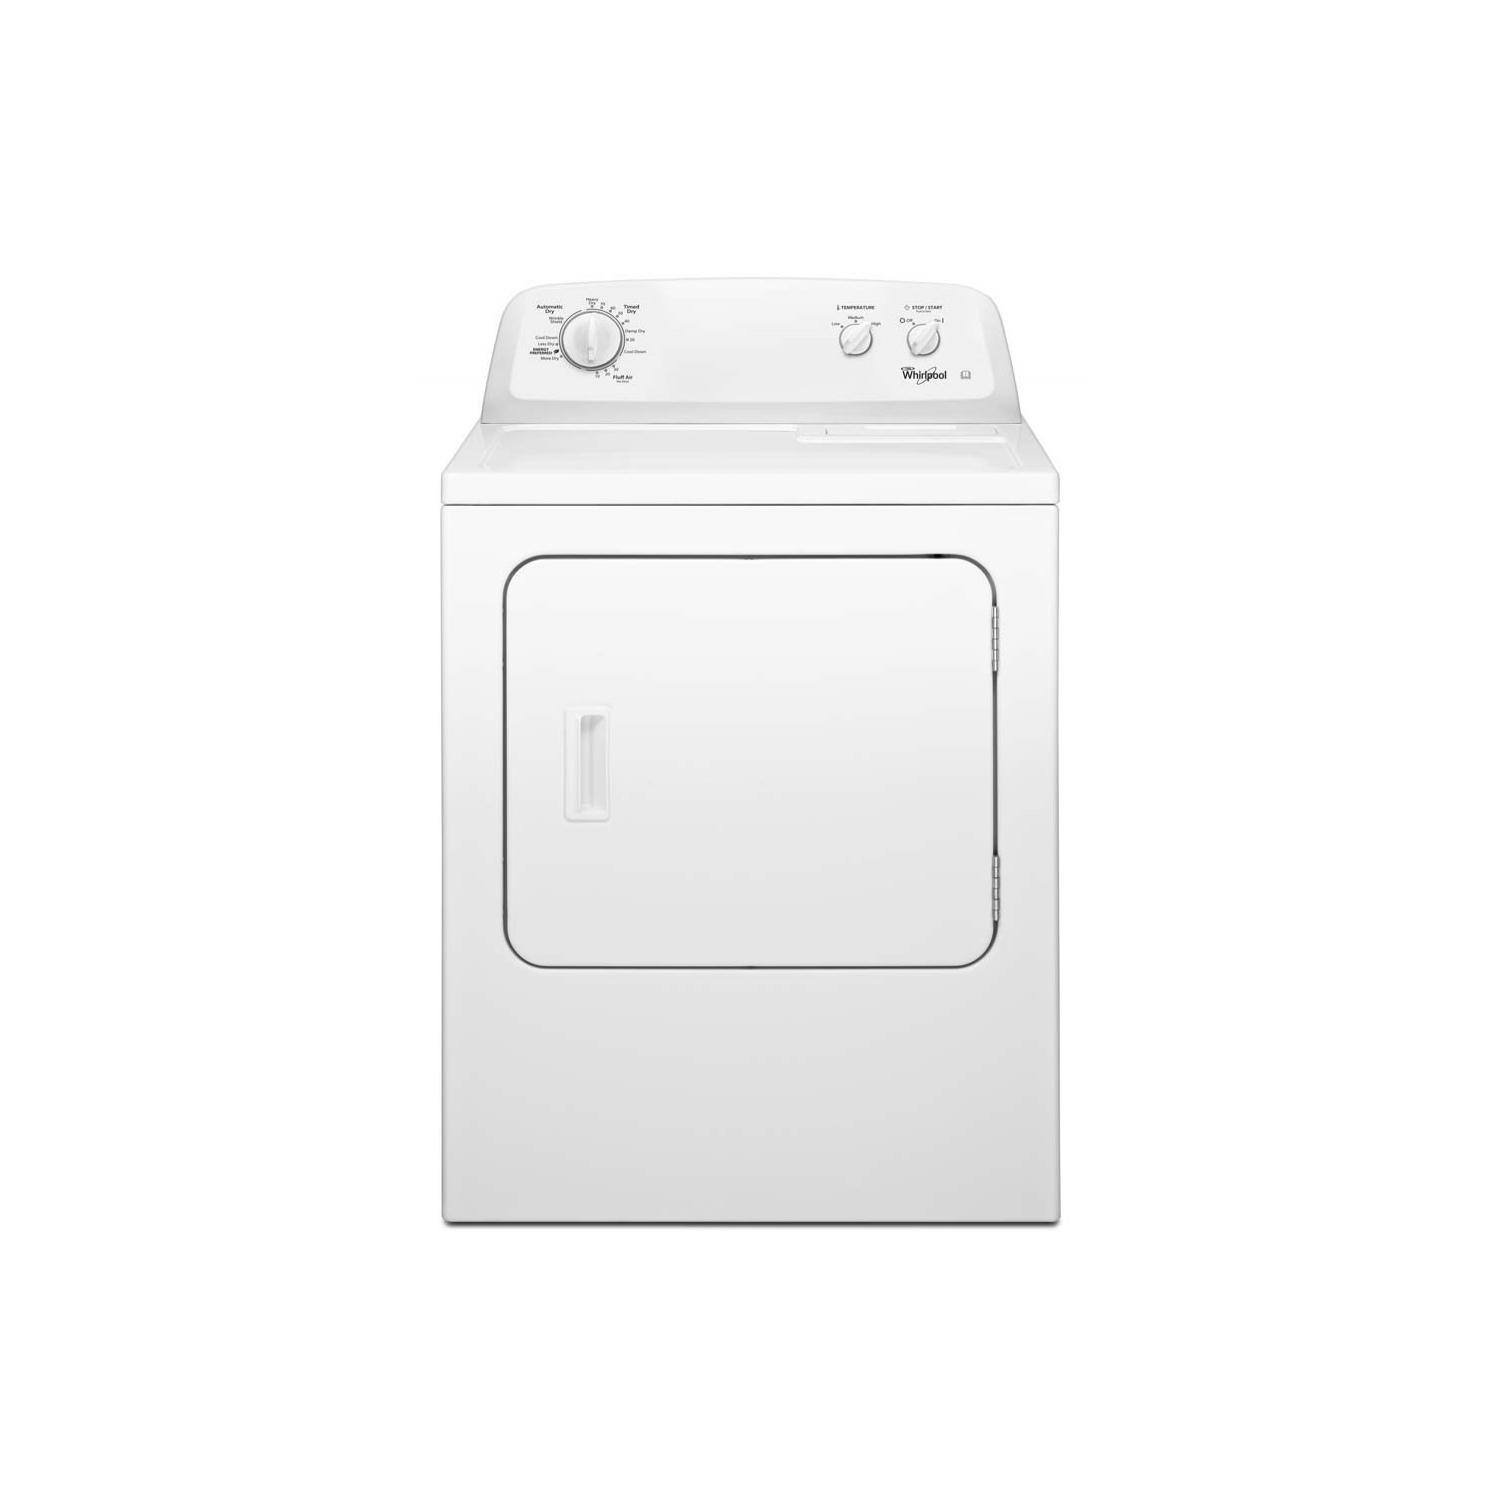 Whirlpool Classic American Style Dryer 15kg - 0